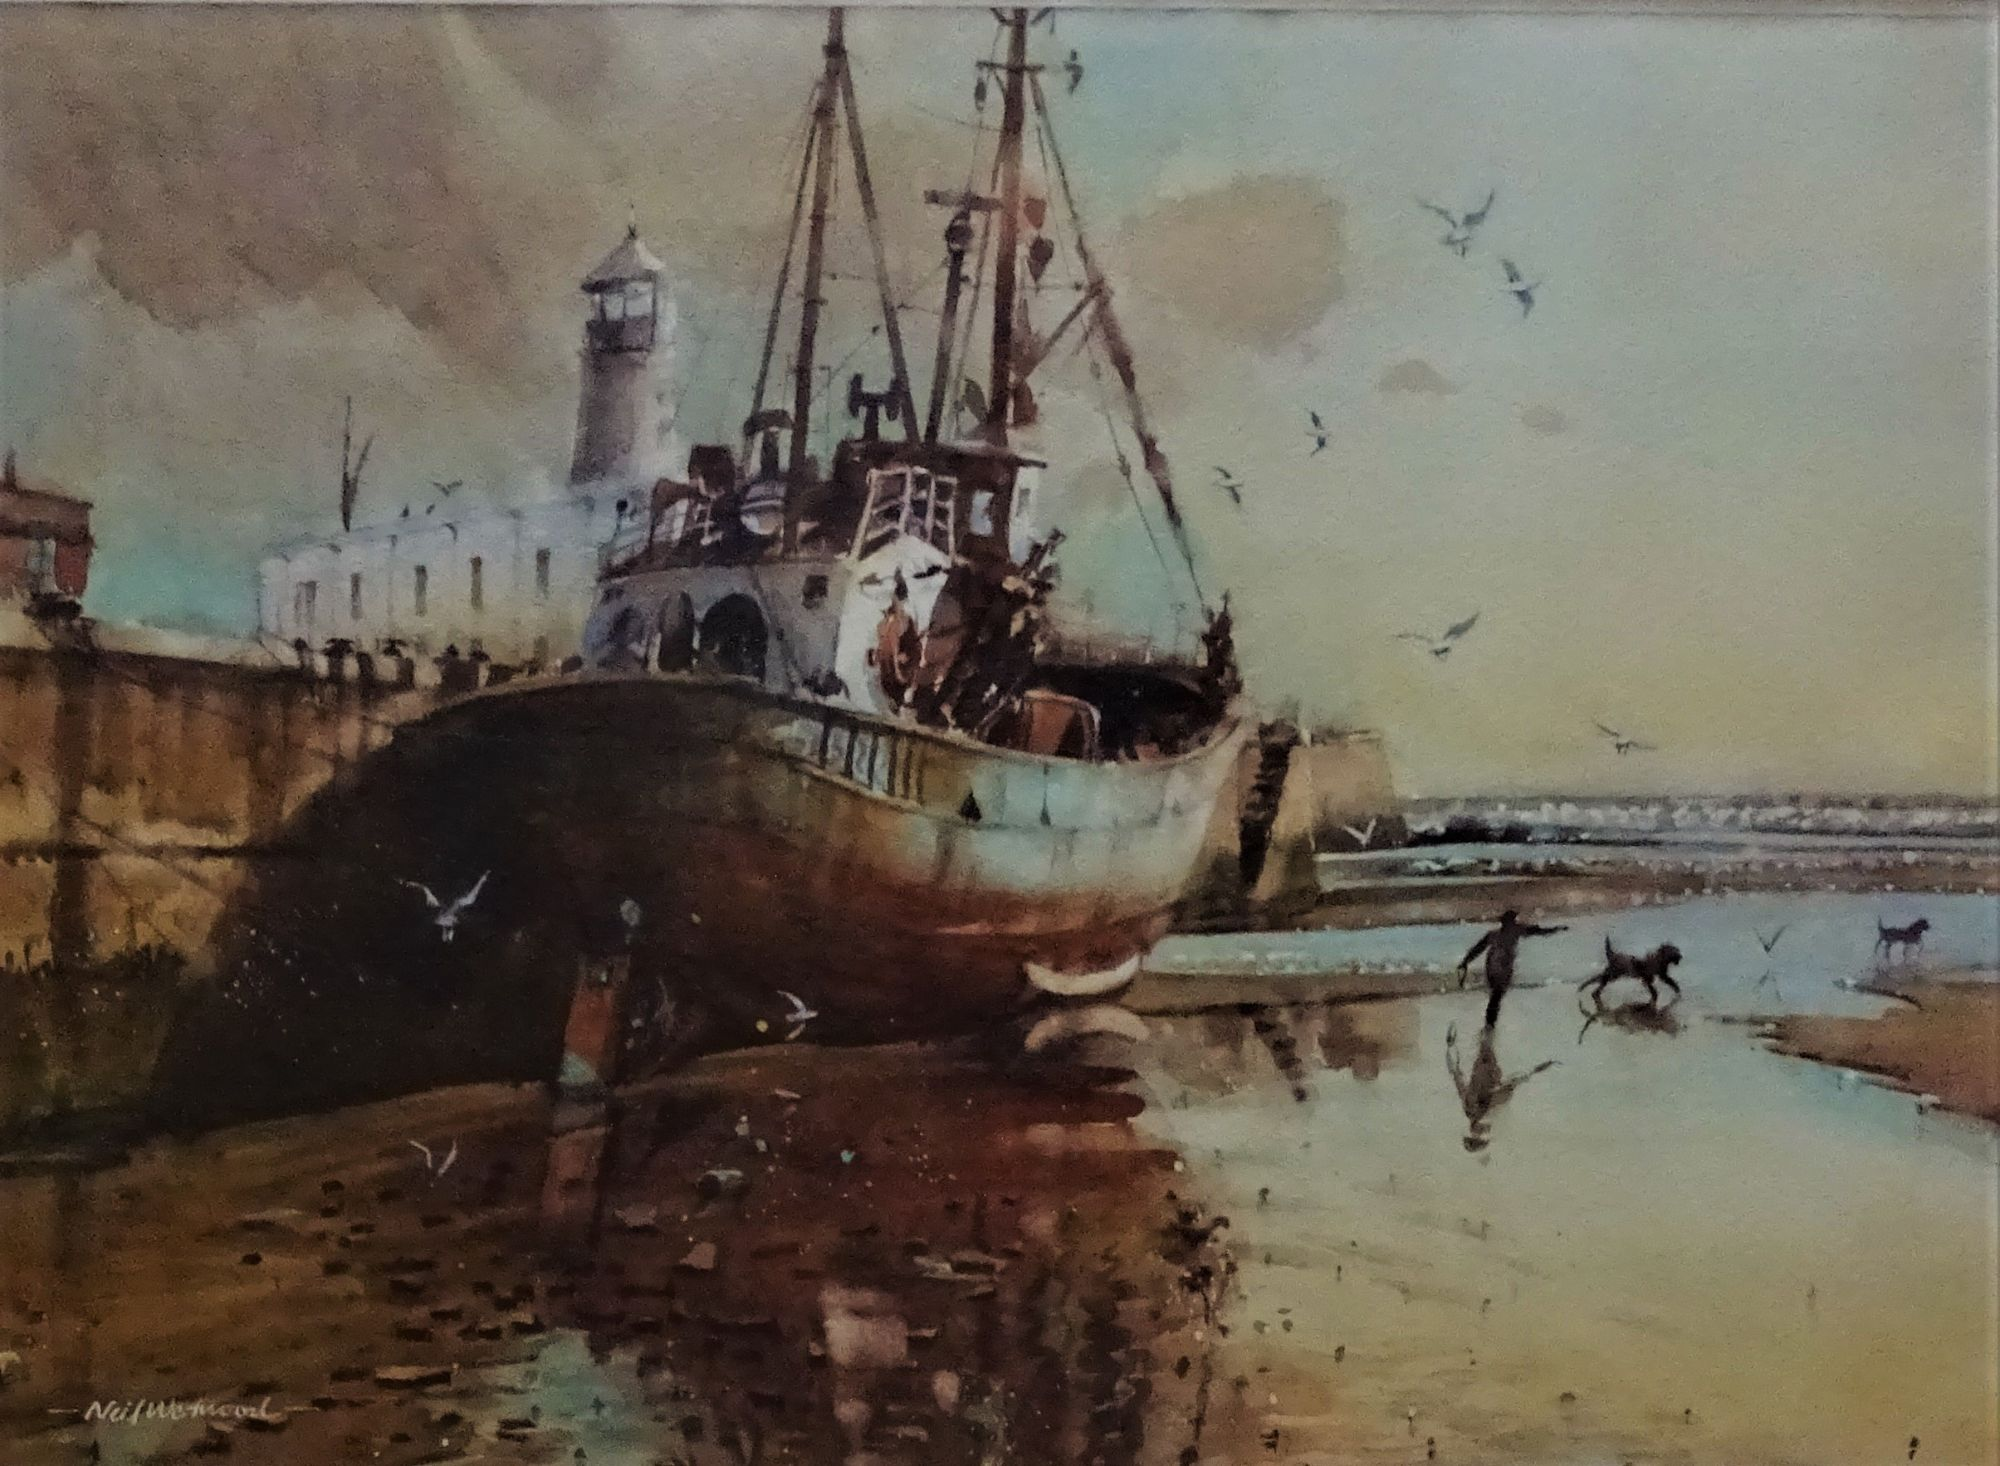 Neil Westwood, Scarborough Harbour, watercolour, 1997.